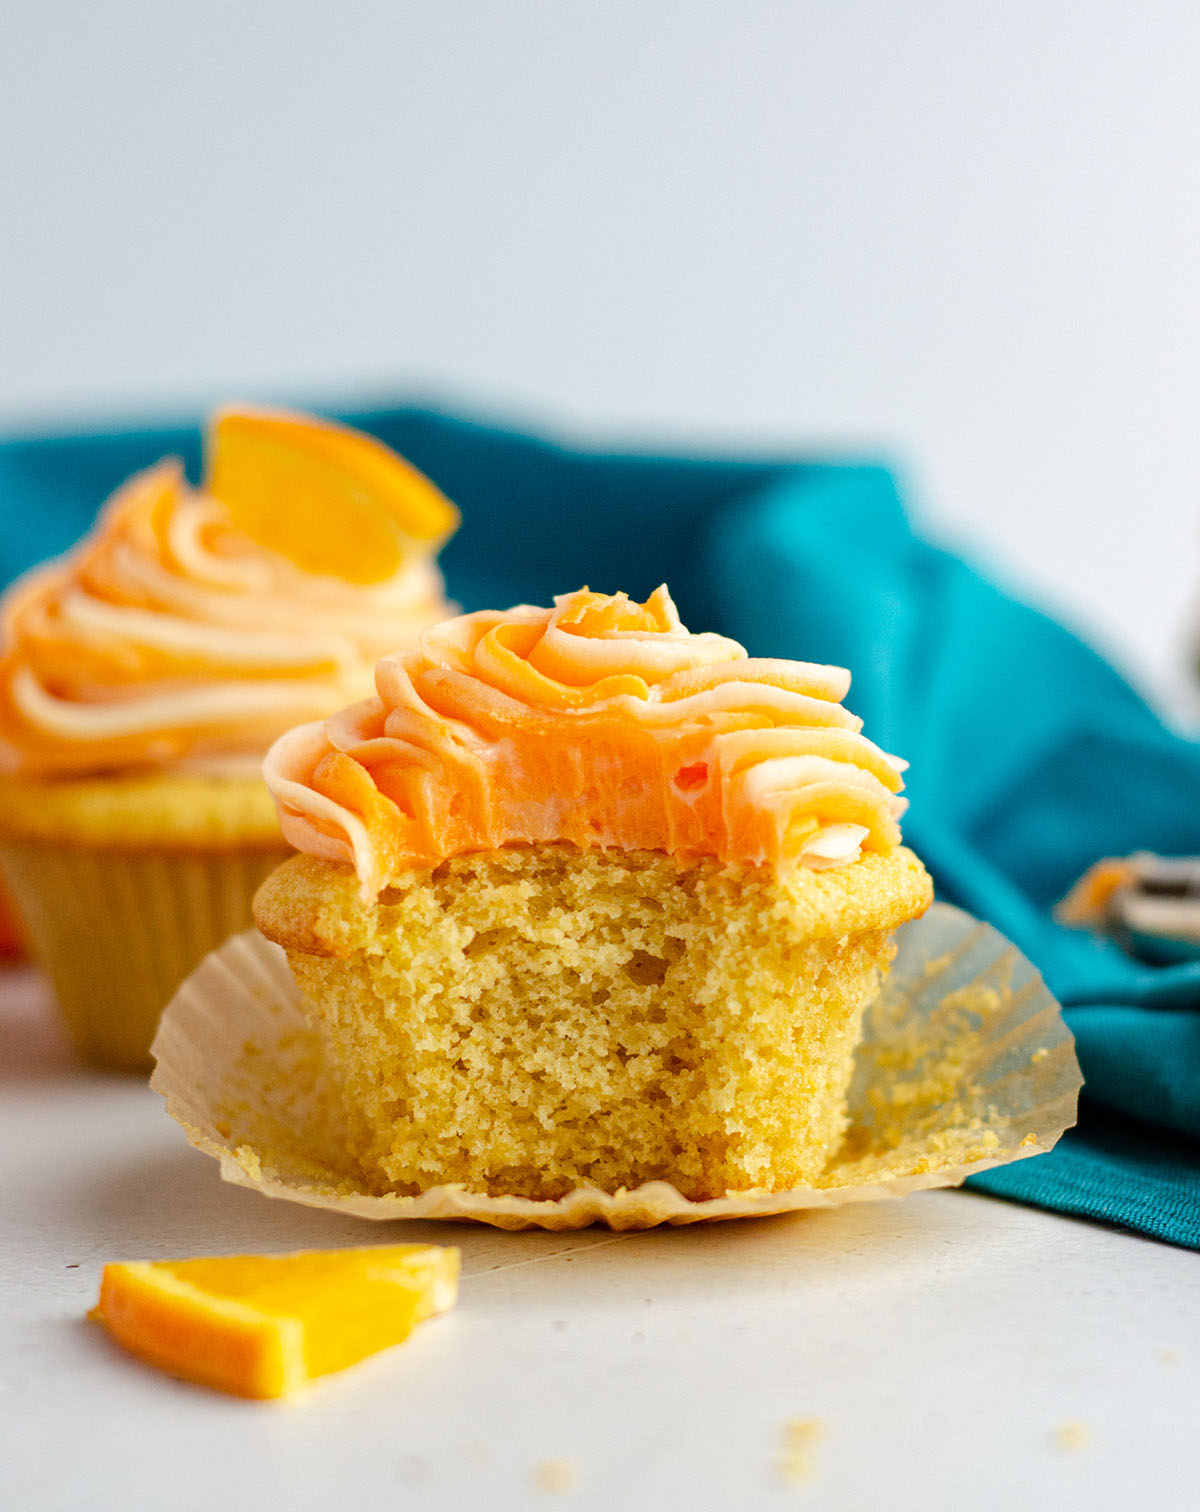 orange creamsicle cupcake with a bite taken out of it